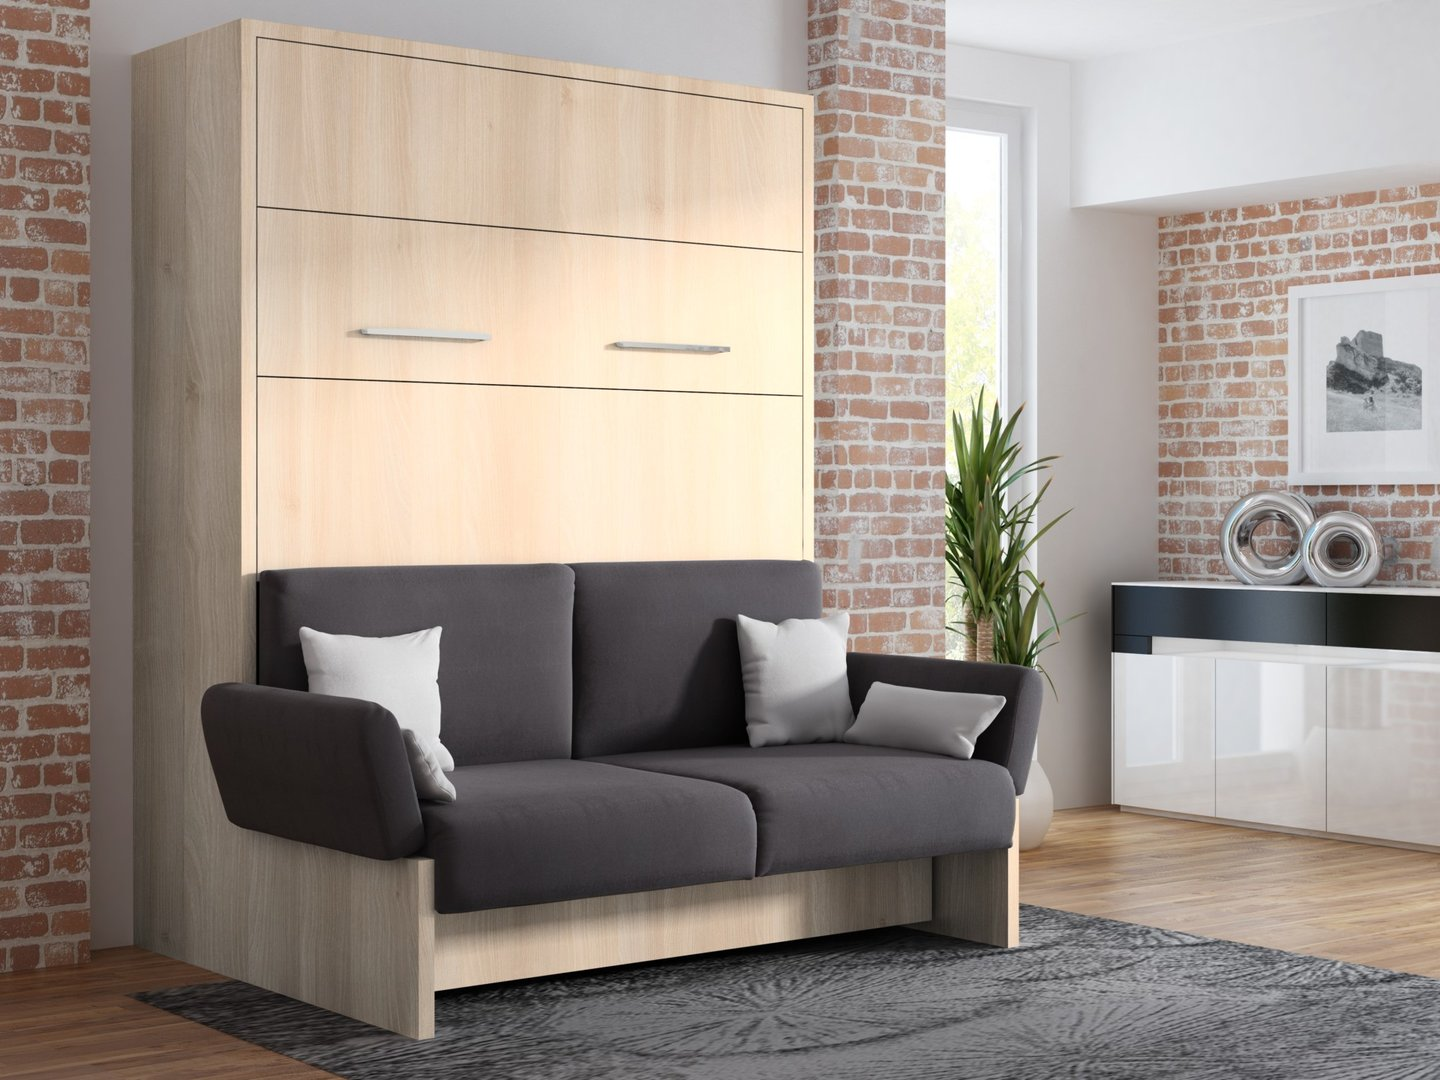 wandbett mit sofa wbs 1 soft 160 x 200 cm in akazie hell. Black Bedroom Furniture Sets. Home Design Ideas